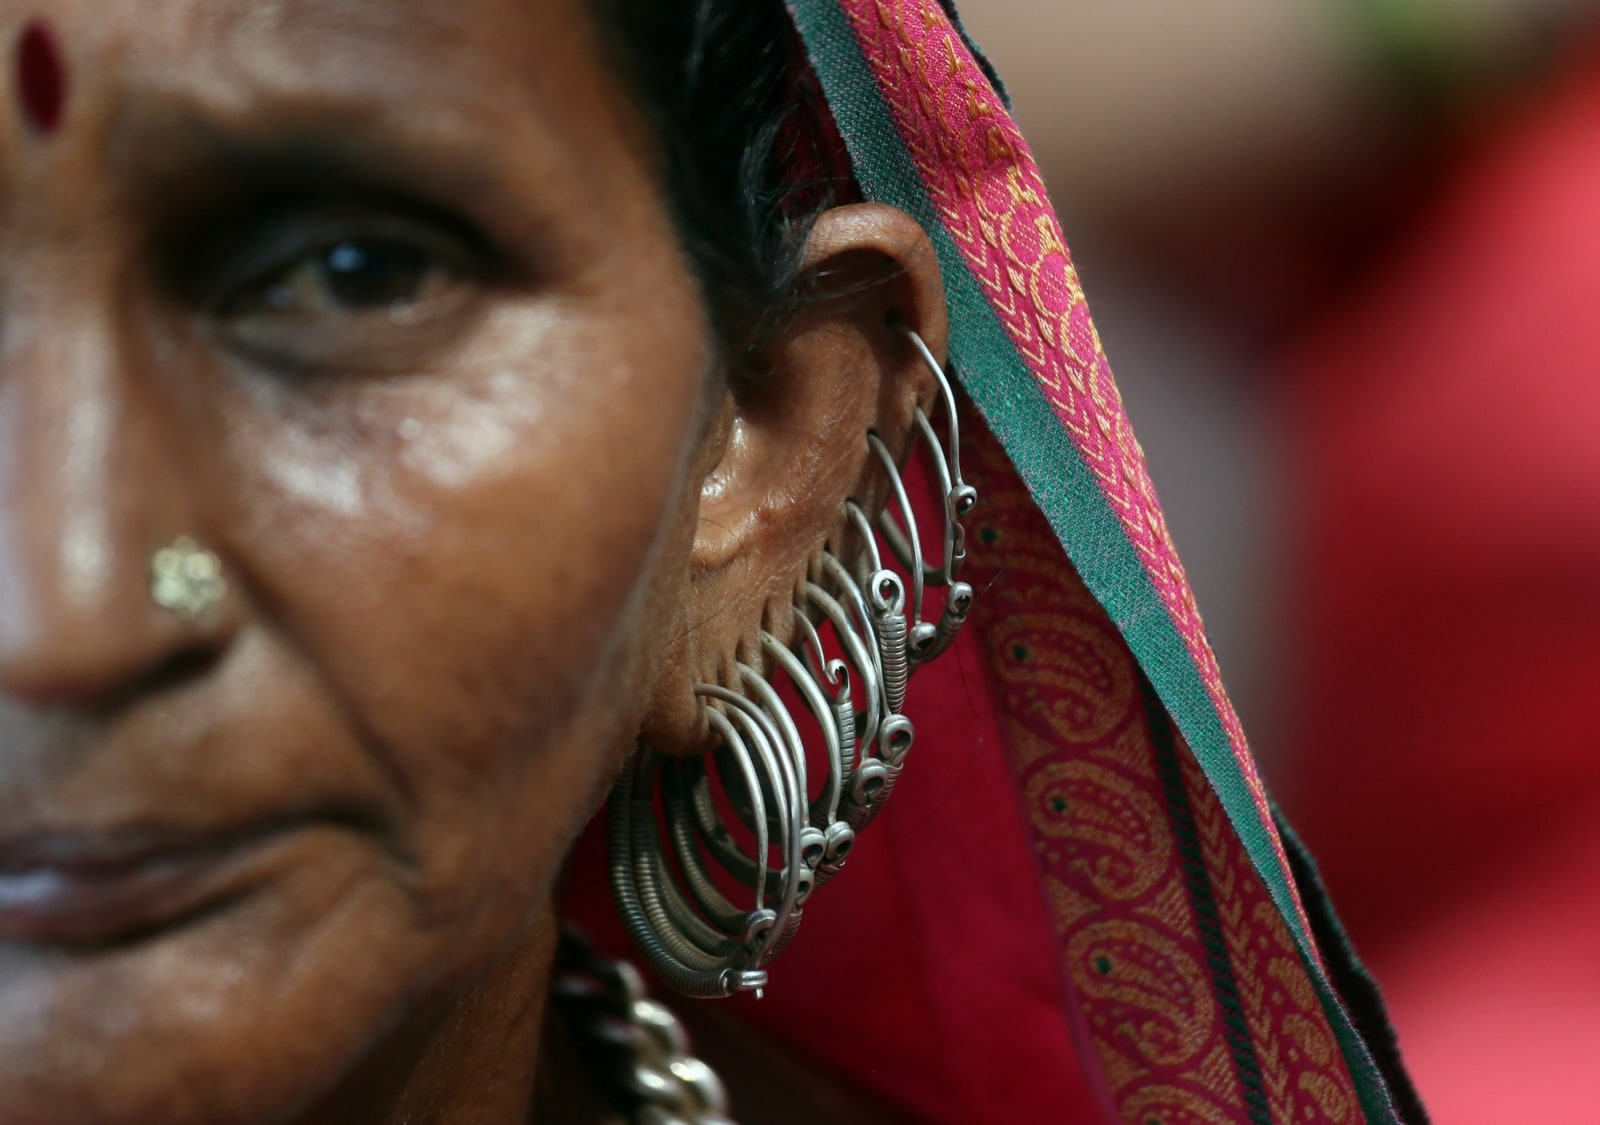 Santhibai, a 50-year old farmer, attends a protest rally demanding loan waivers and the transfer of forest lands to villagers who have farmed there for decades, in Mumbai, November 22, 2018. REUTERS/Francis Mascarenhas